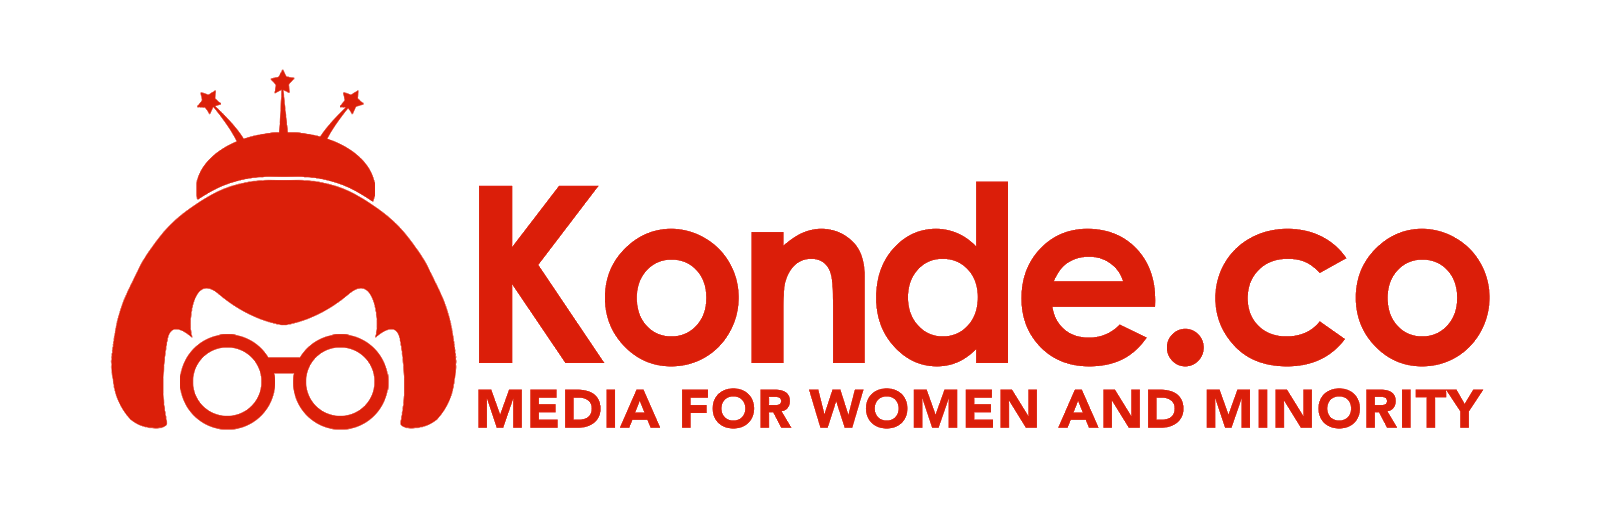 KONDE - MEDIA FOR WOMEN AND MINORITY